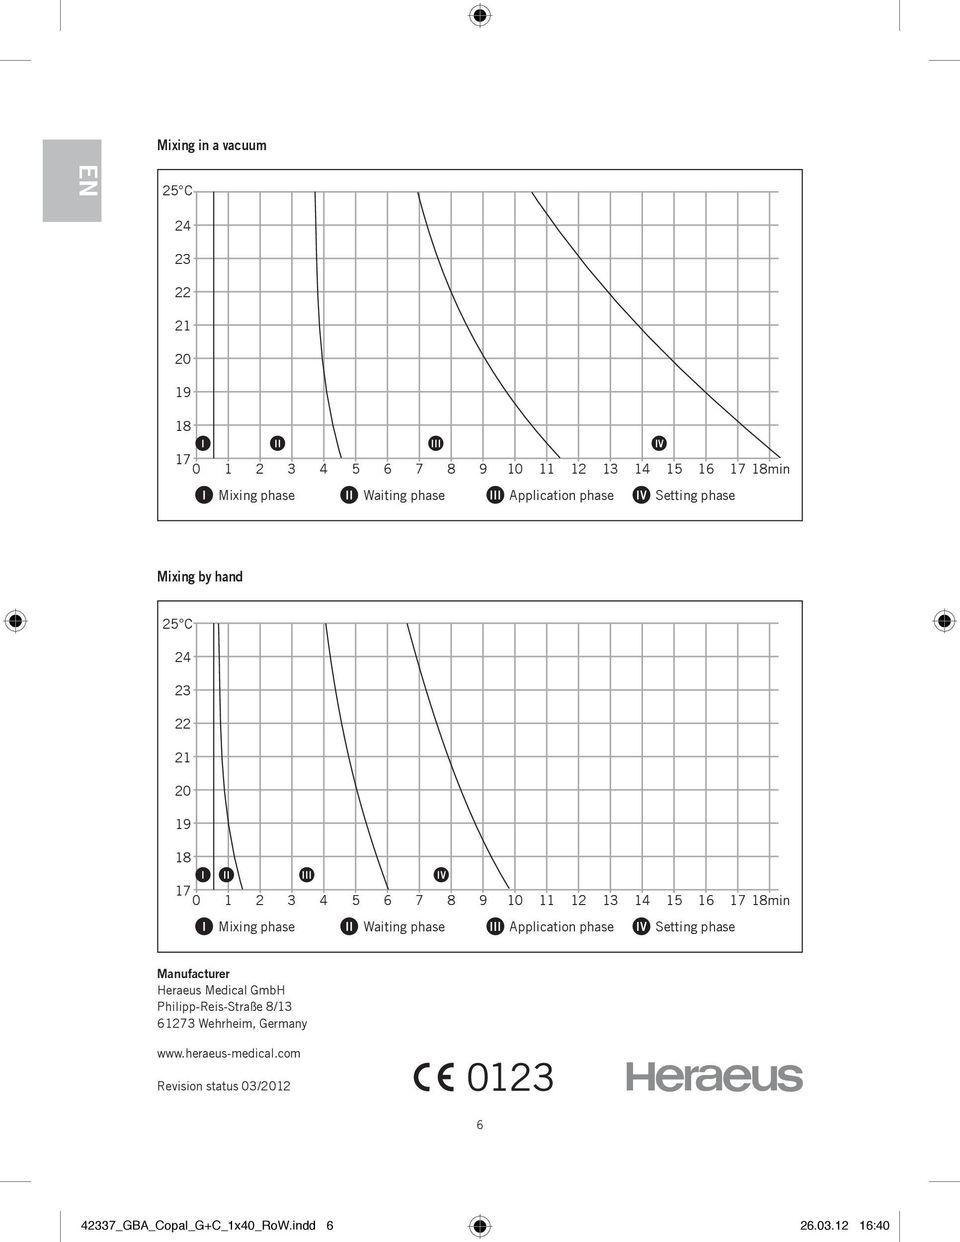 15 16 17 min I Mixing phase II Waiting phase III Application phase IV Setting phase Manufacturer Heraeus Medical GmbH